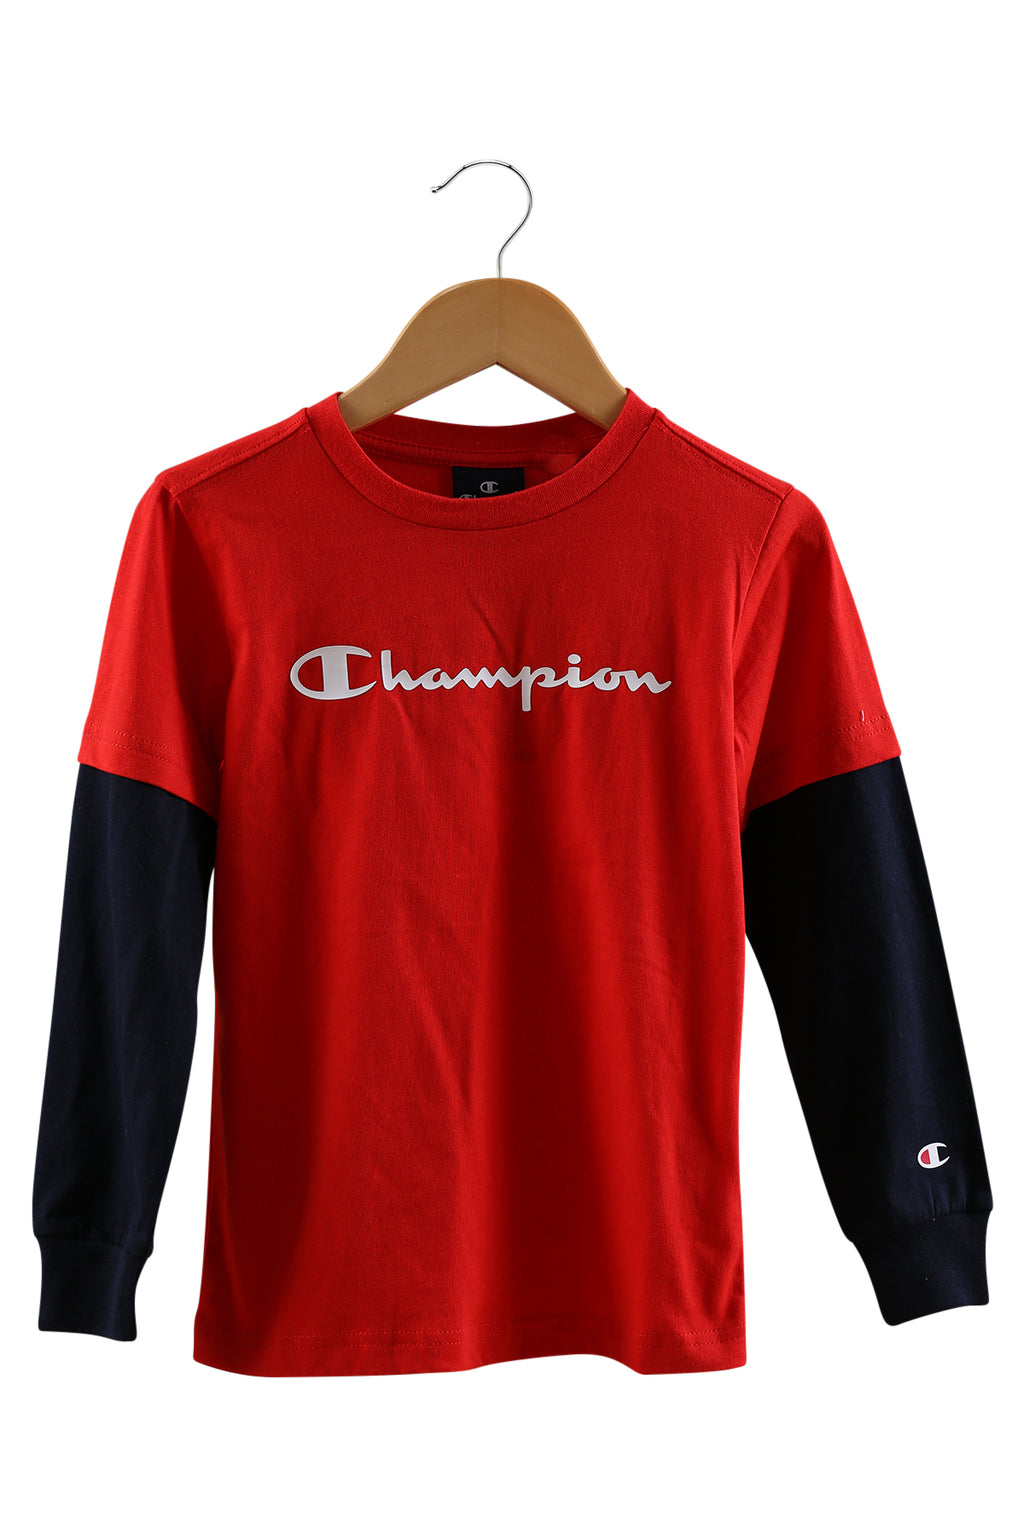 Champion EU Boys Script 2fer Red/Navy